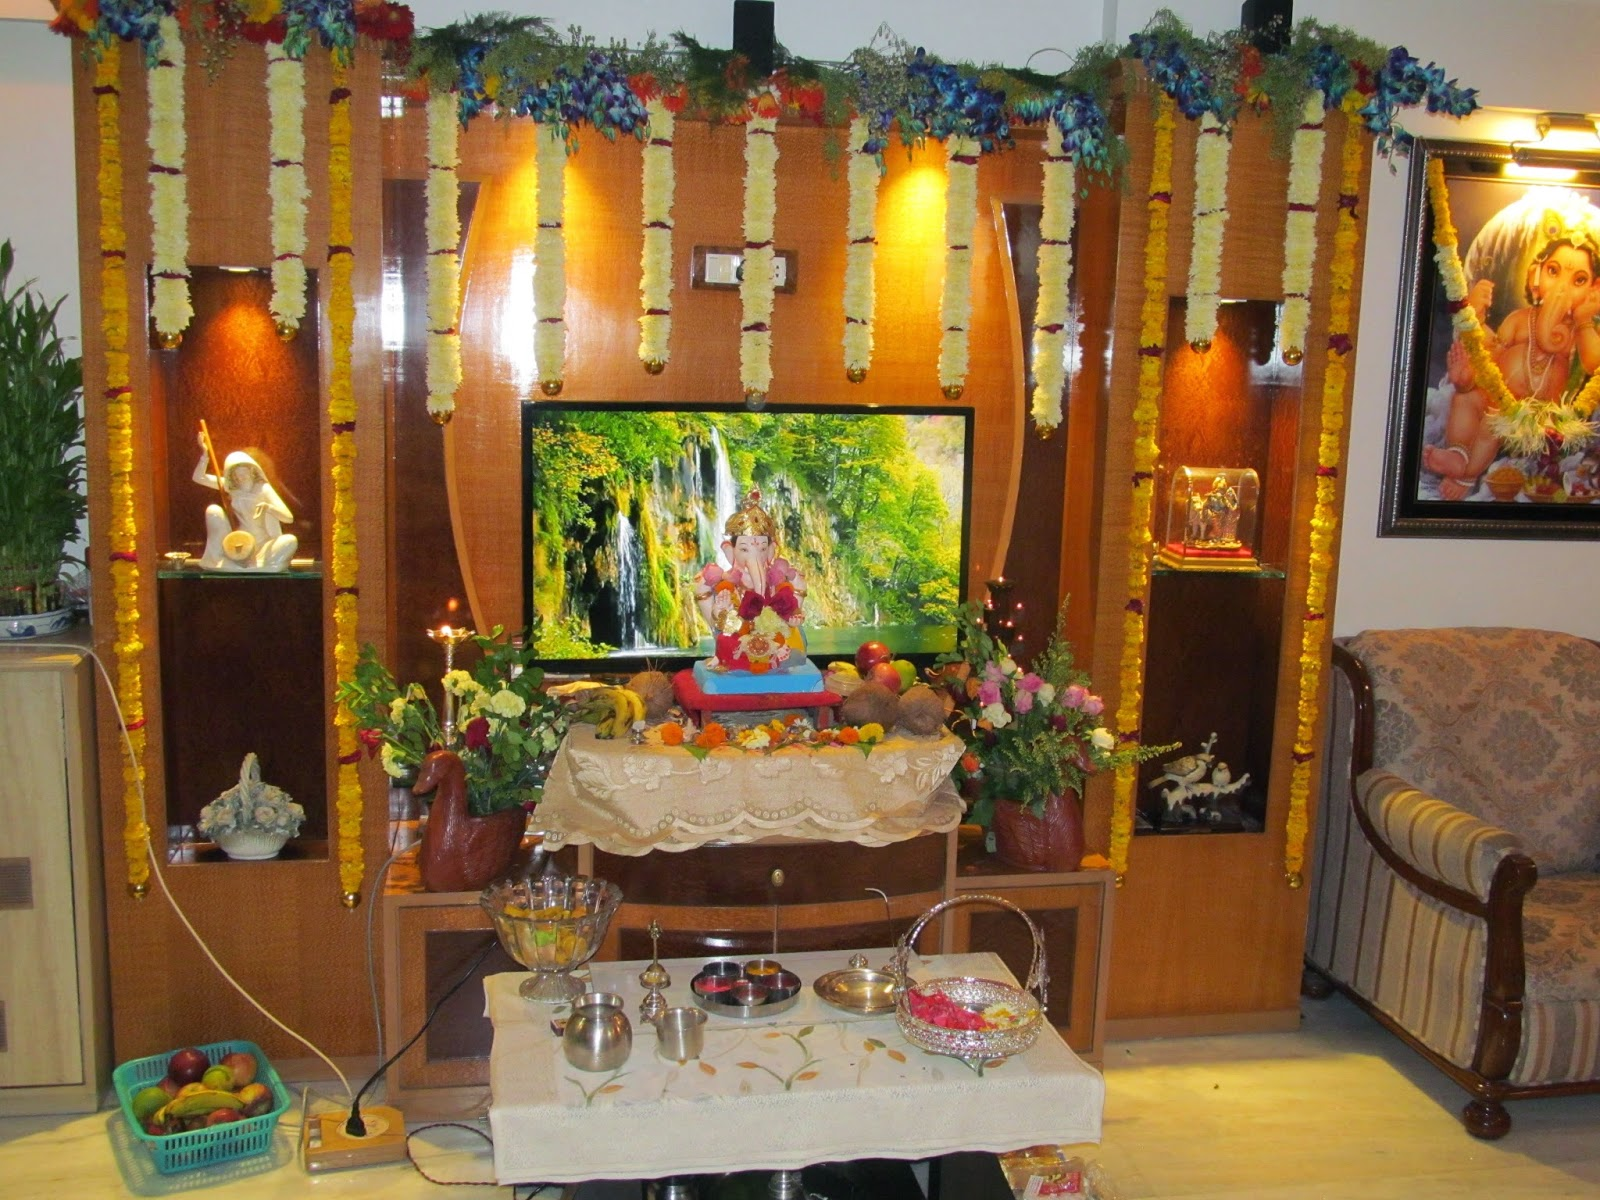 Ganpati Decoration Ideas For Home : Ganpati bappa decoration ideas themes for home